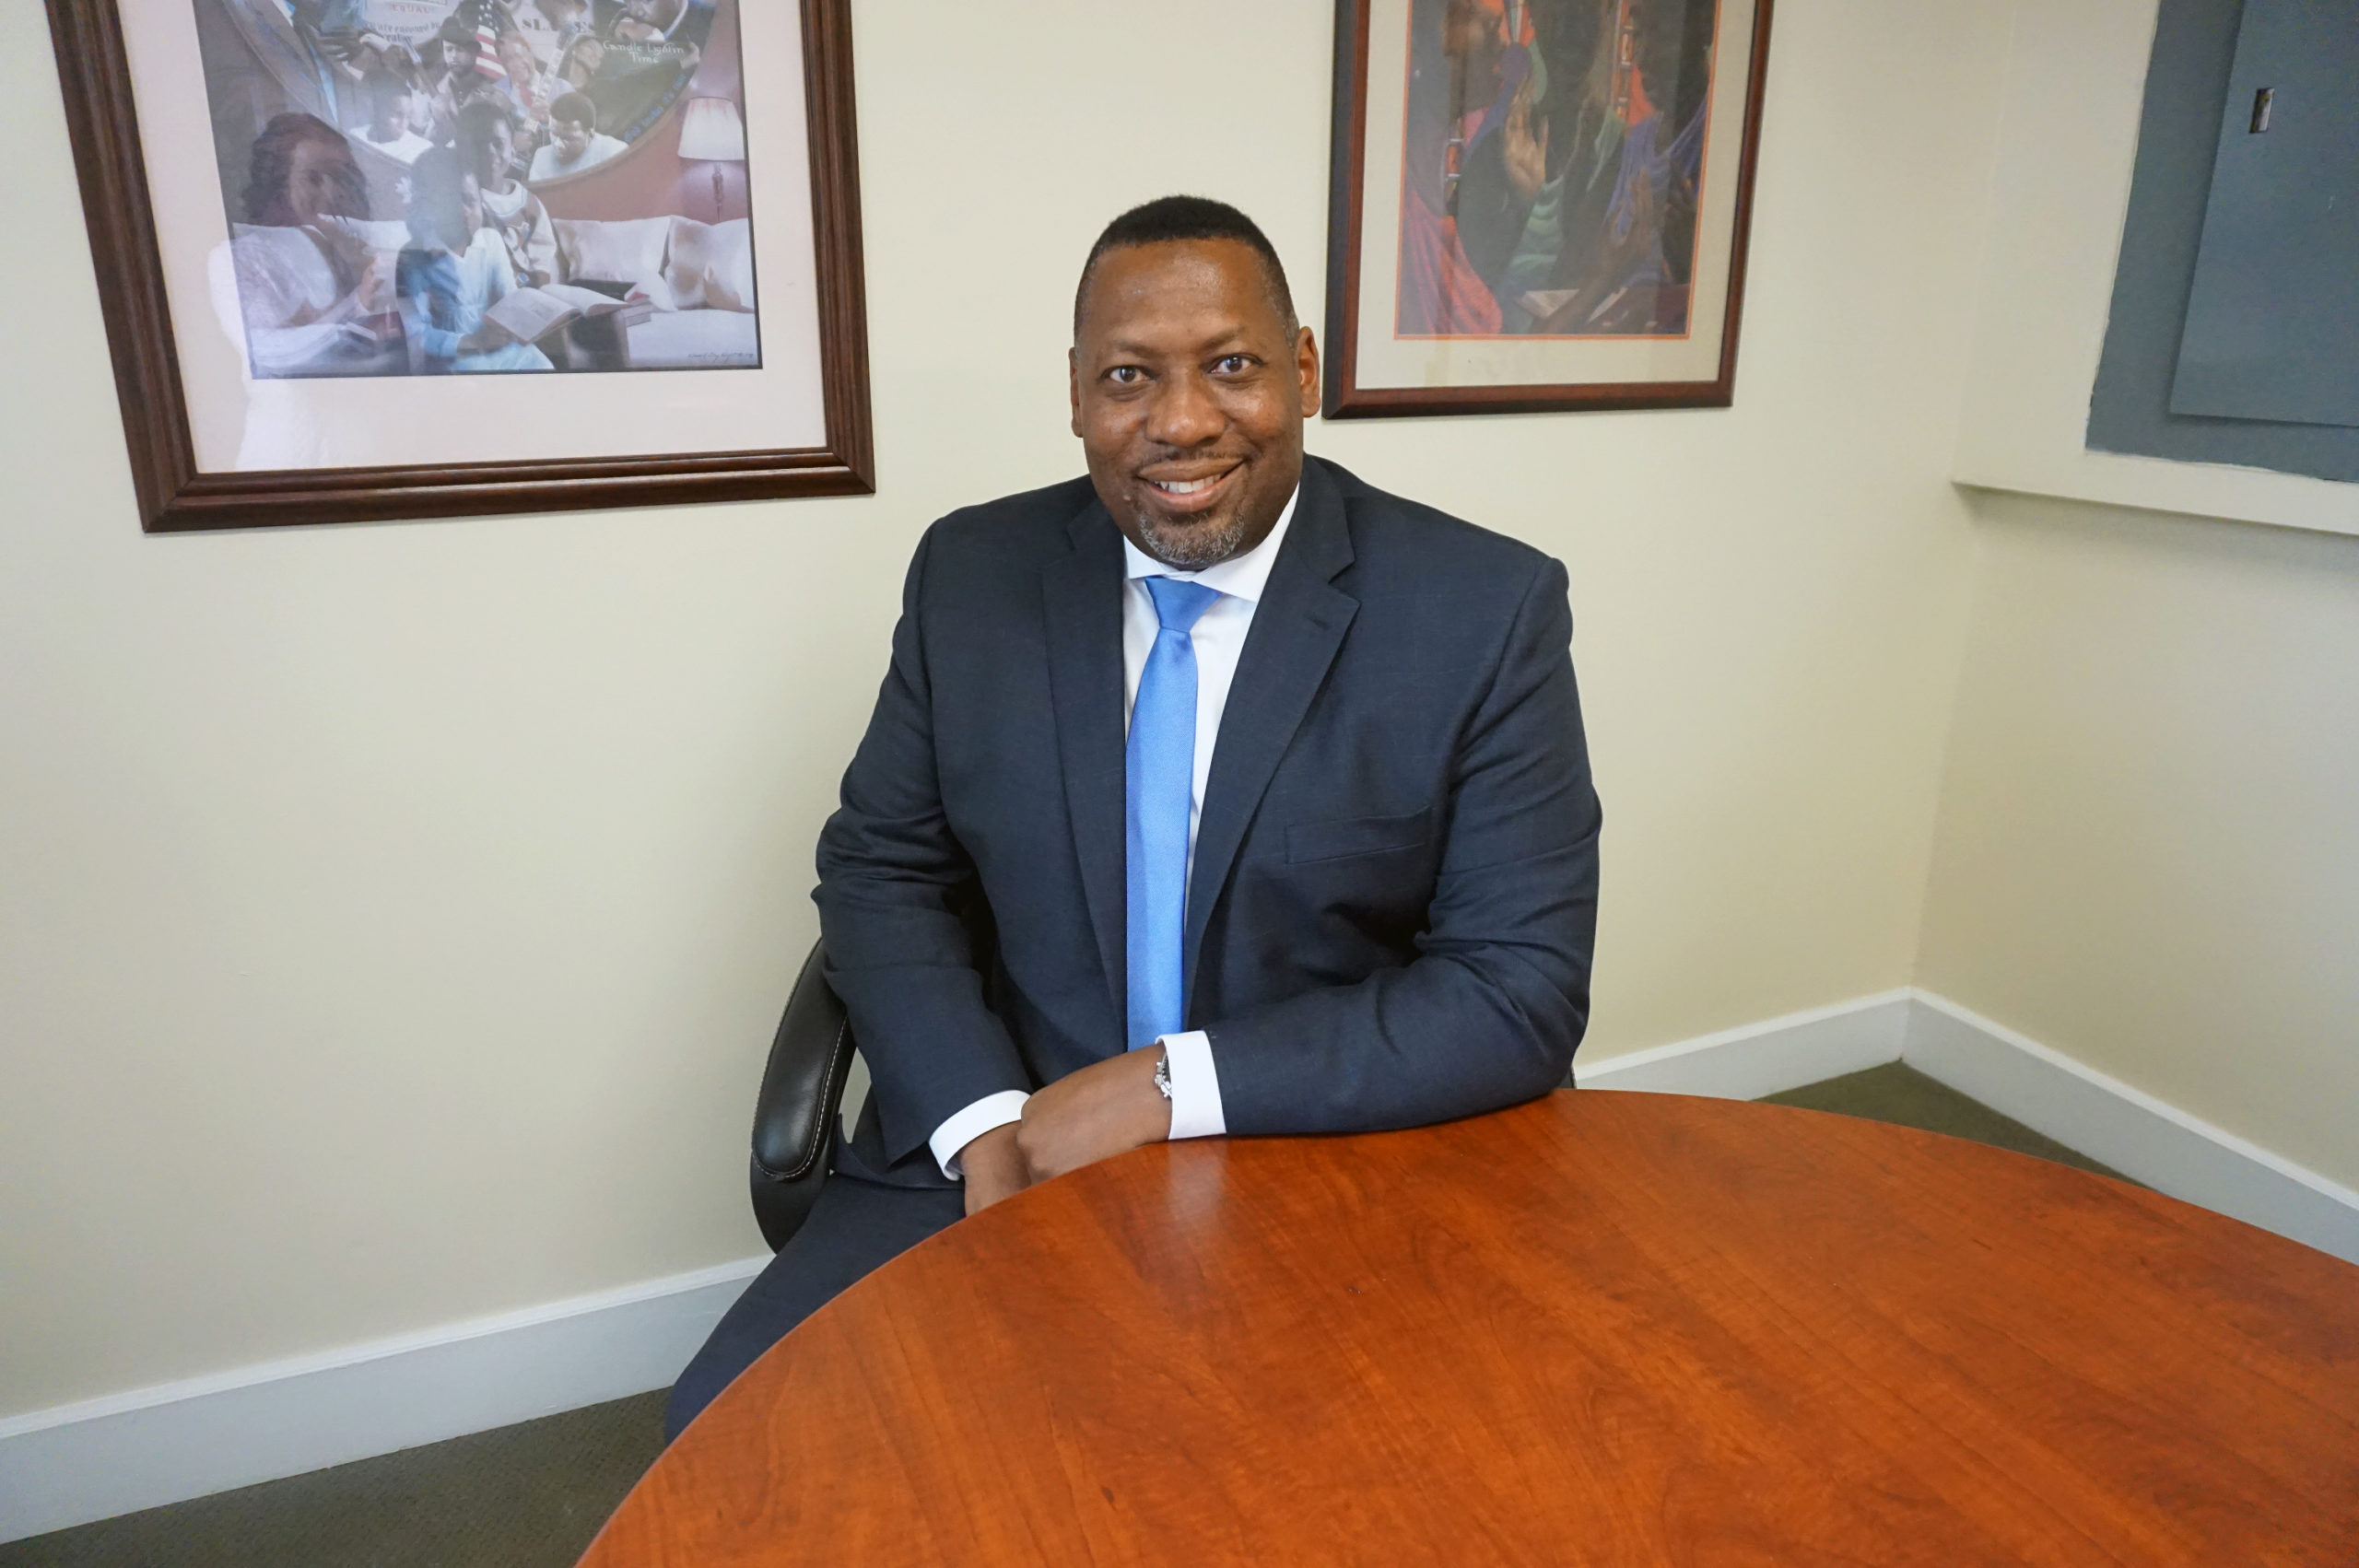 New Community Welcomes New Chief Operating Officer